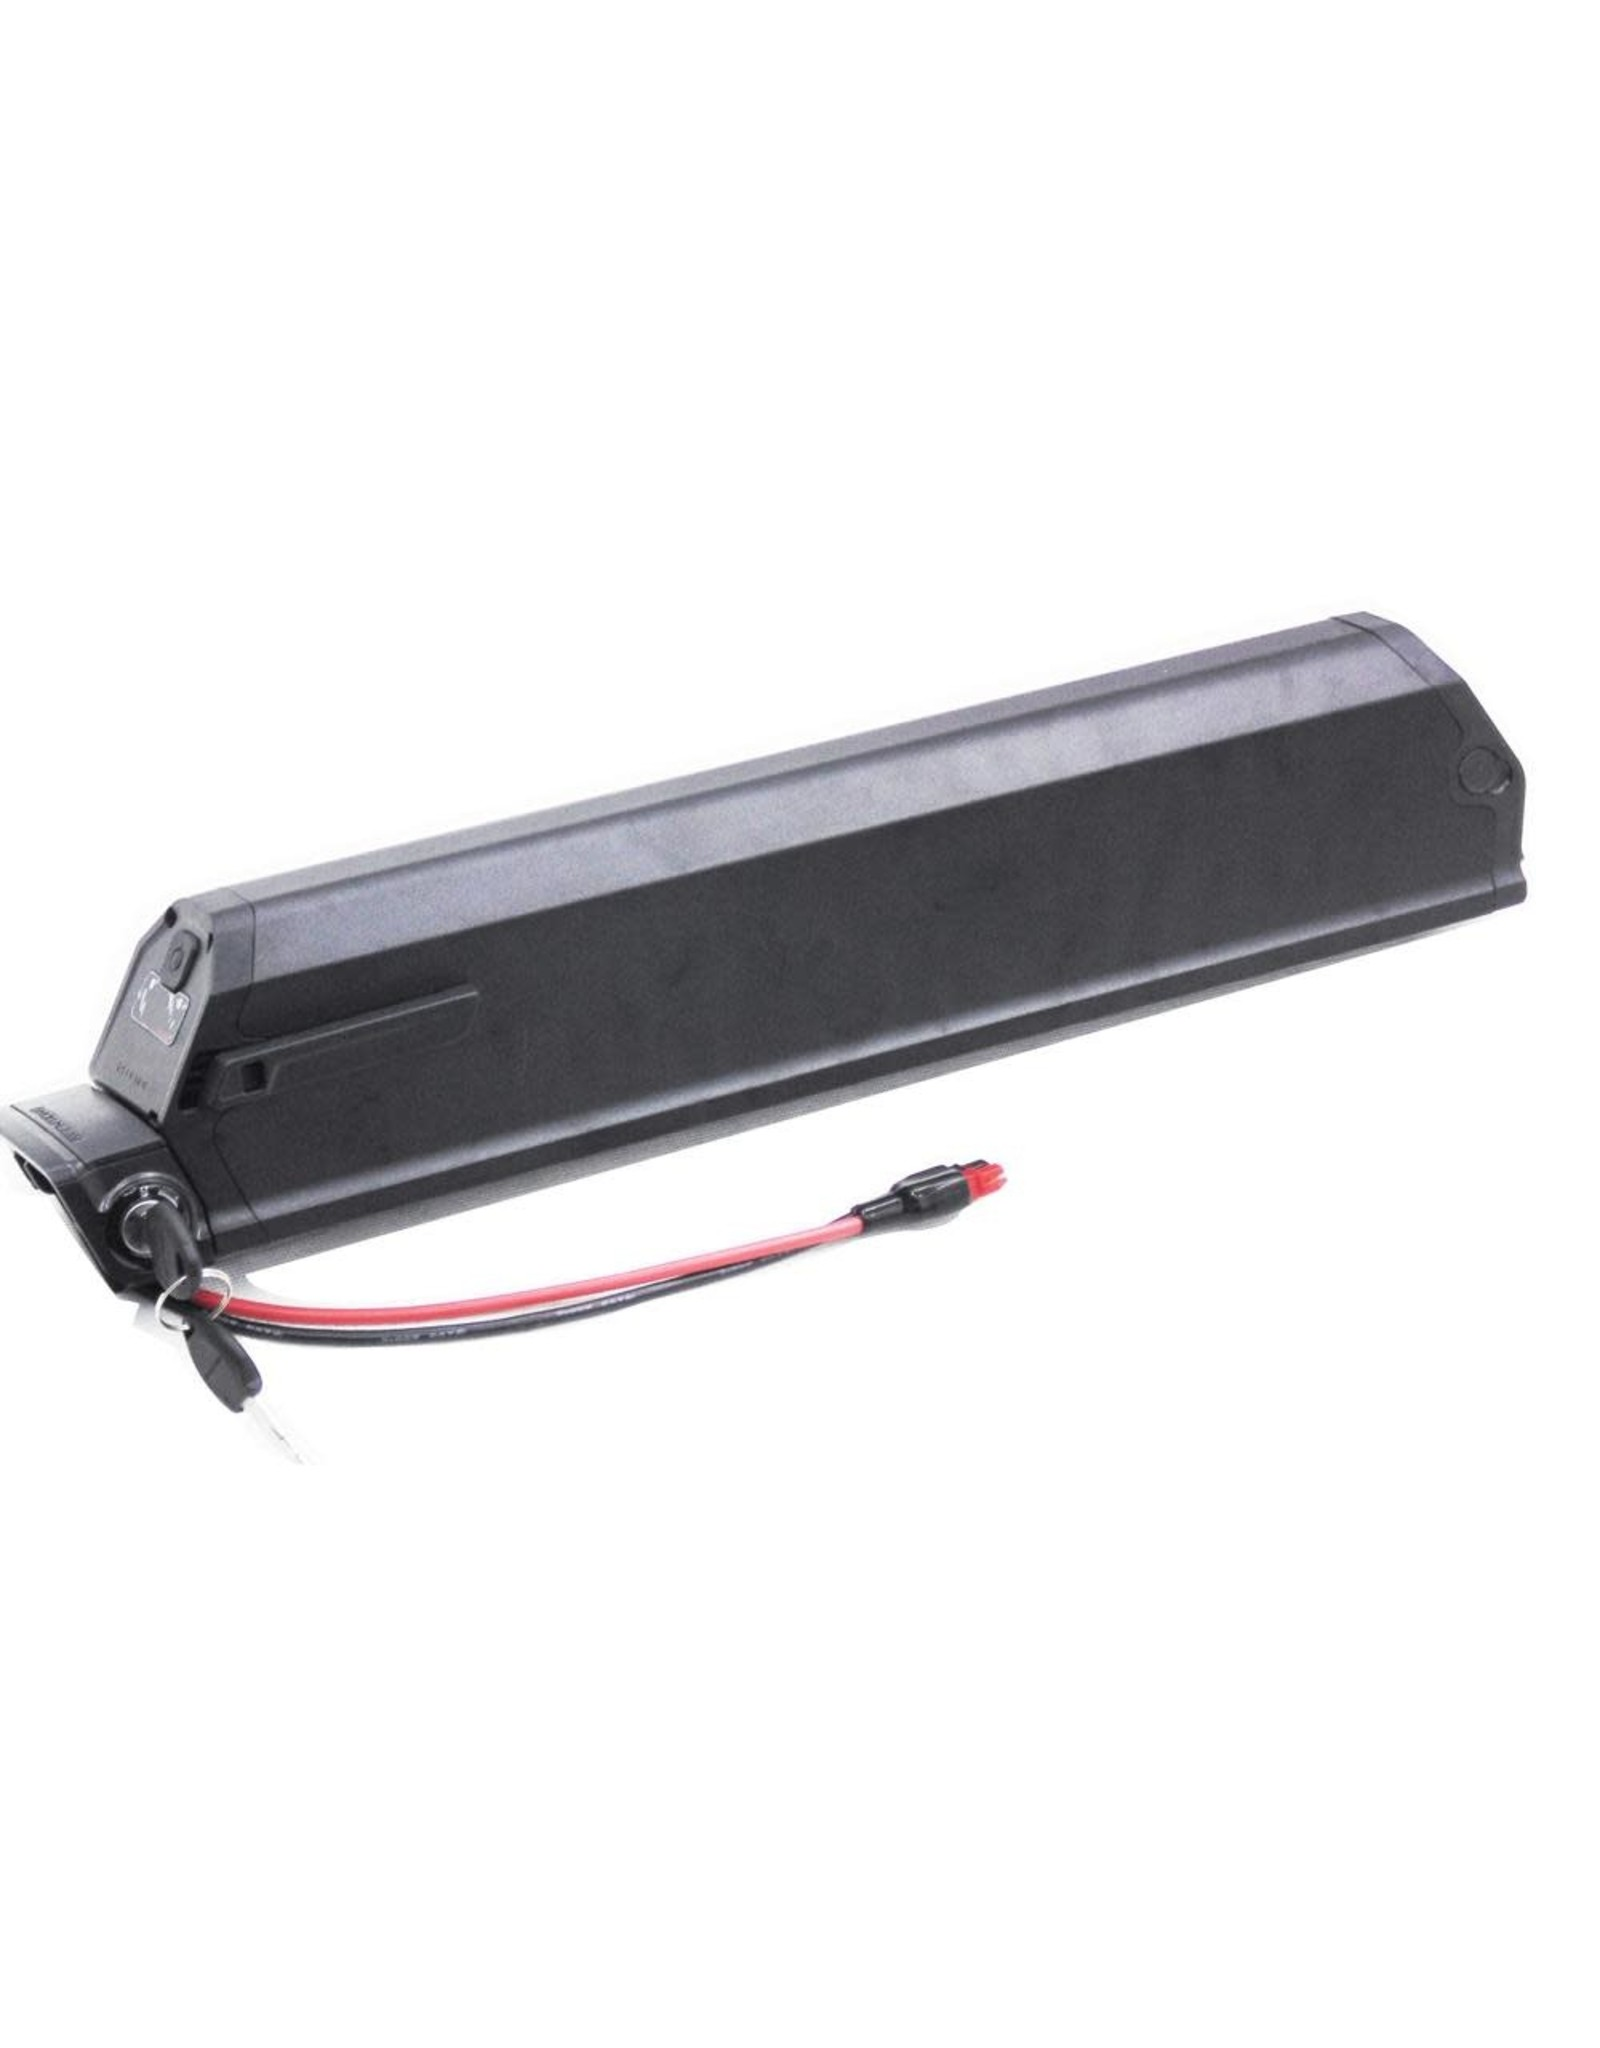 Dorado Max Big Battery 48V 21Ah  1008Wh for electric bicycle